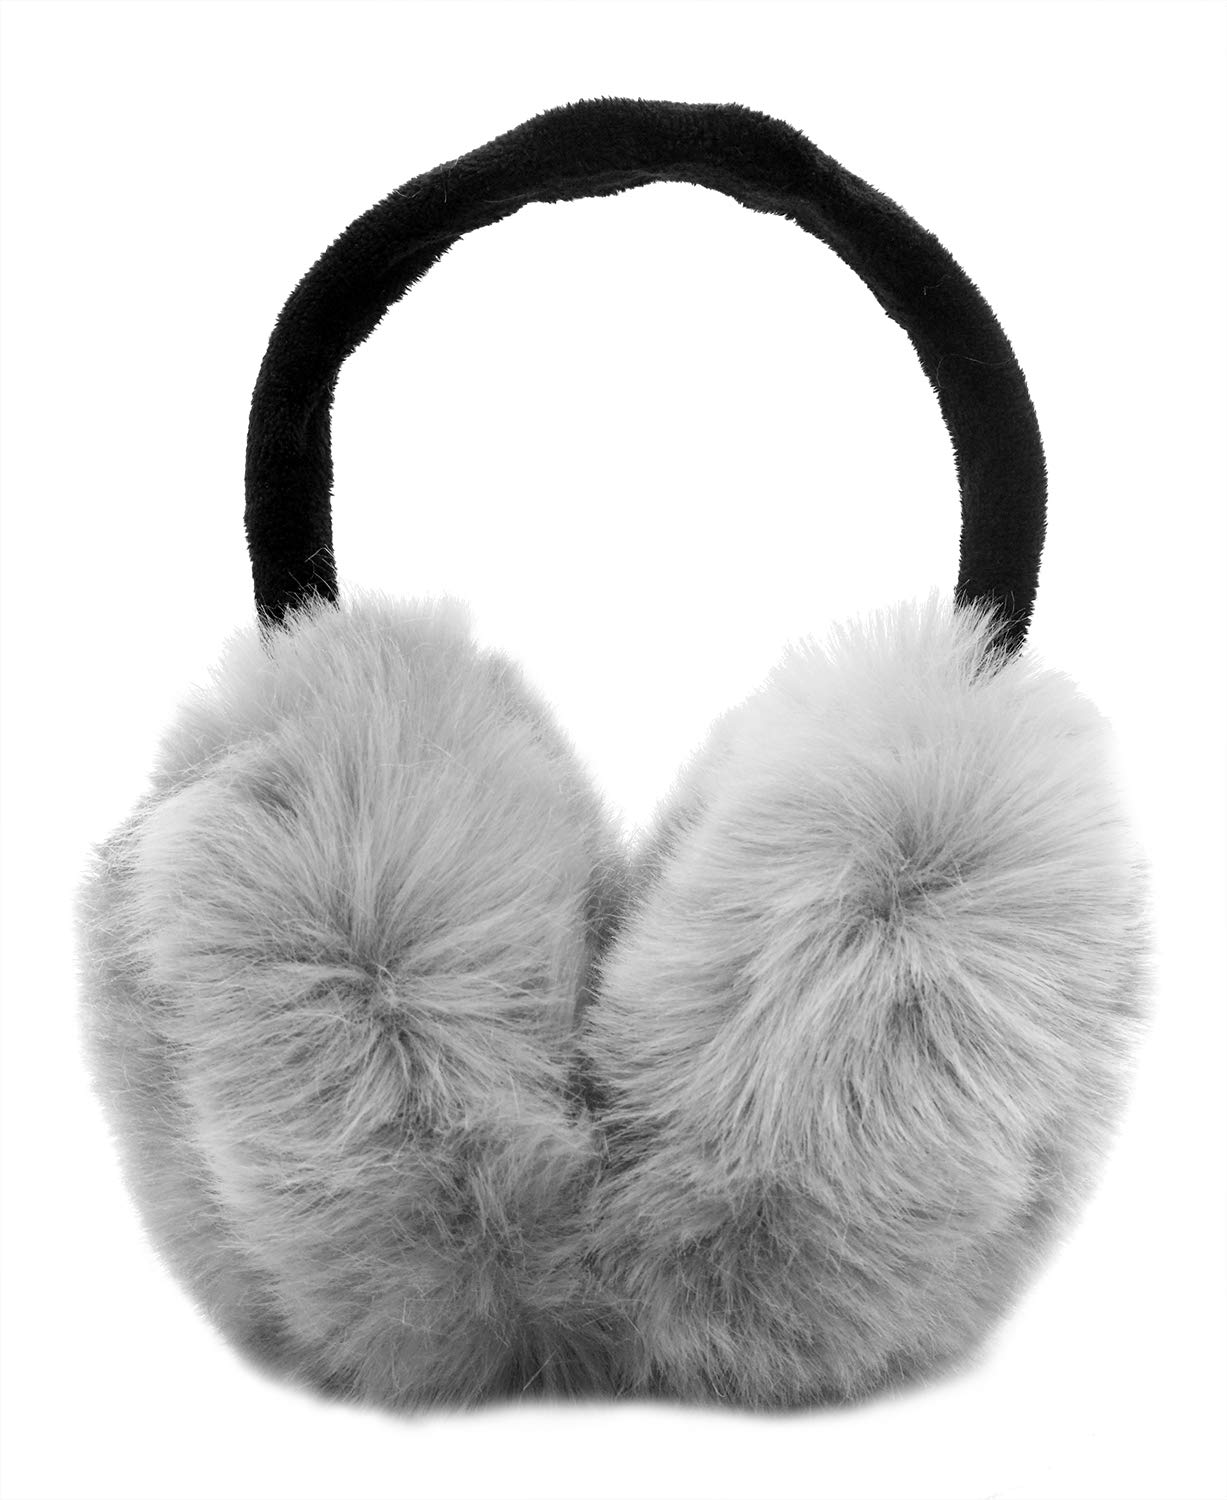 Womens Headband Winter Faux Fur Outdoor EarMuffs Warmers Adjustable Earwarmer ZLM00003148